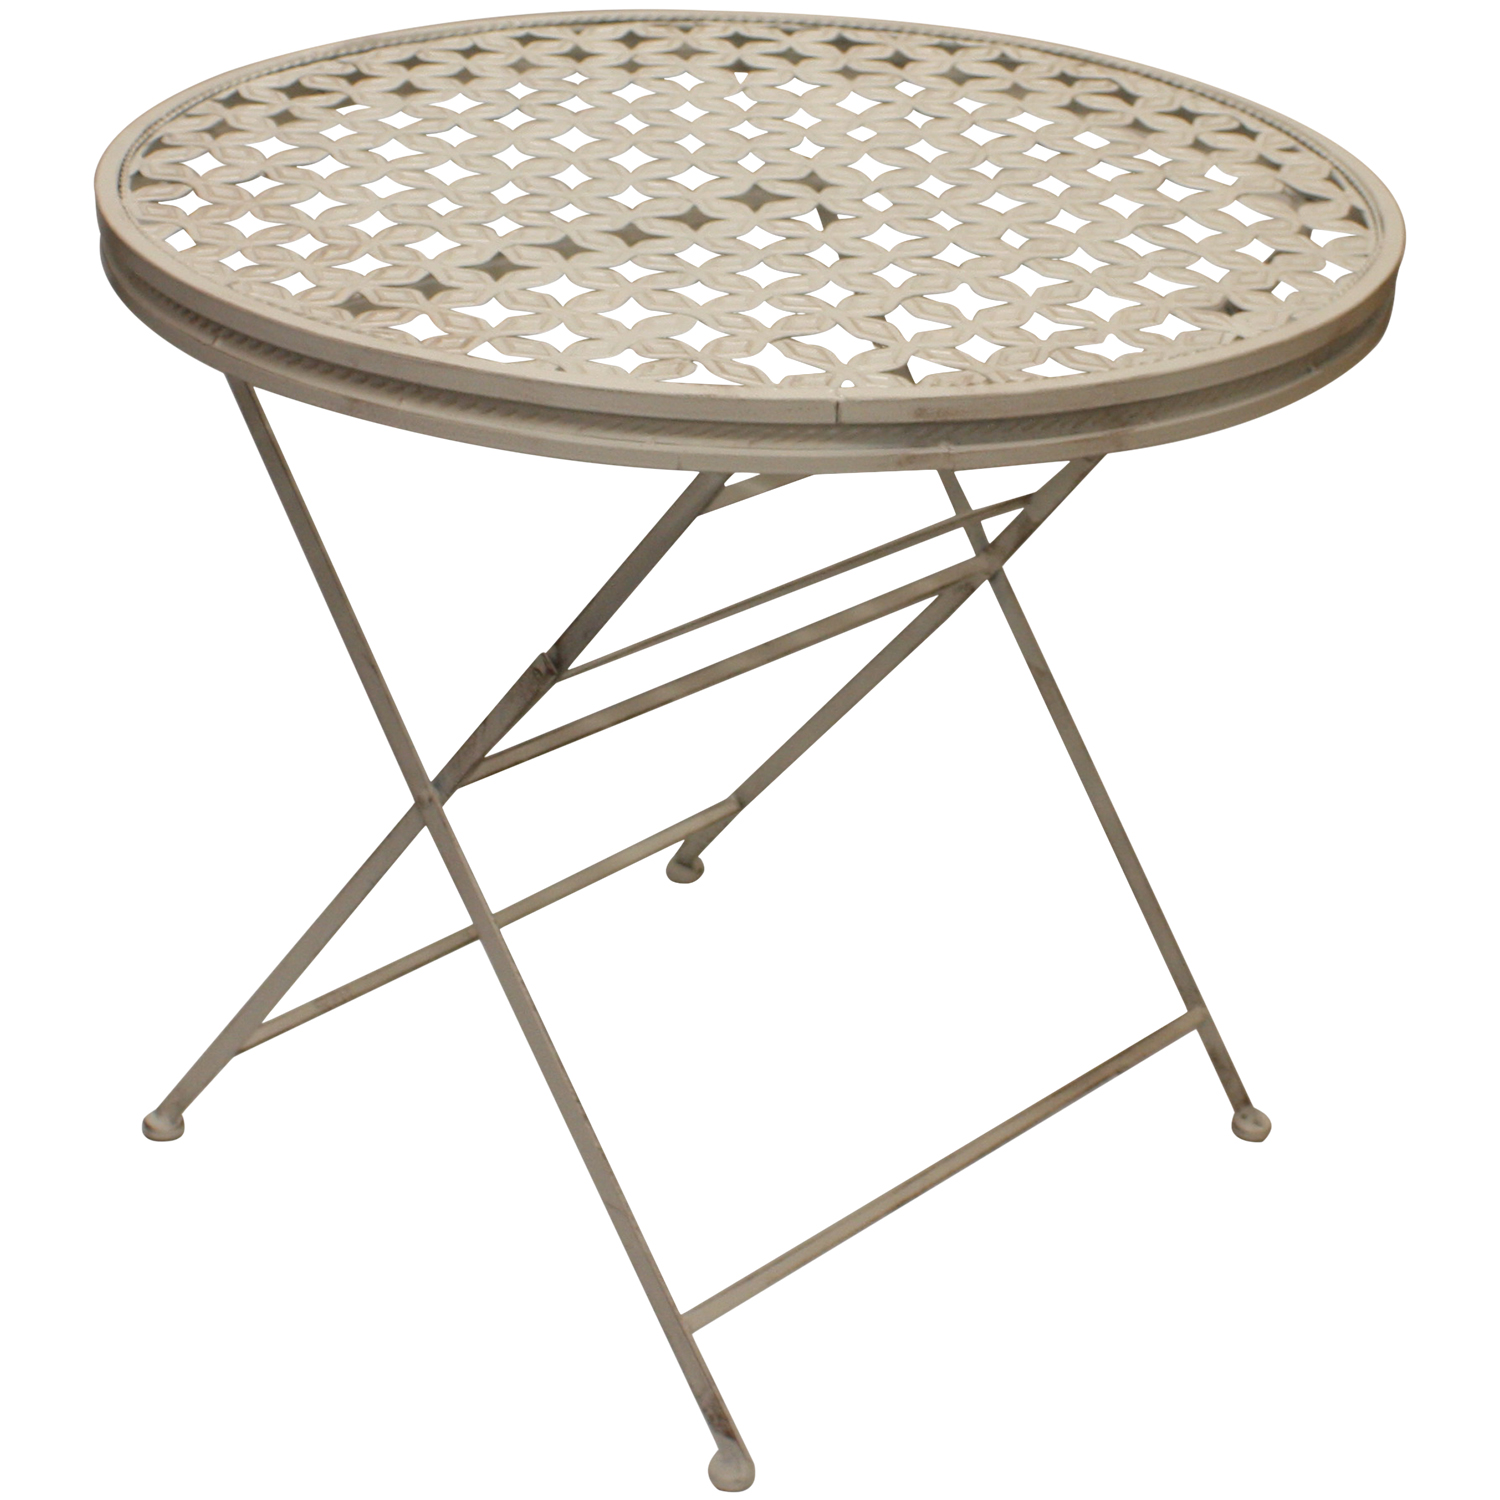 Maribelle Round Folding Metal Garden Patio Dining Table Outdoor Furniture